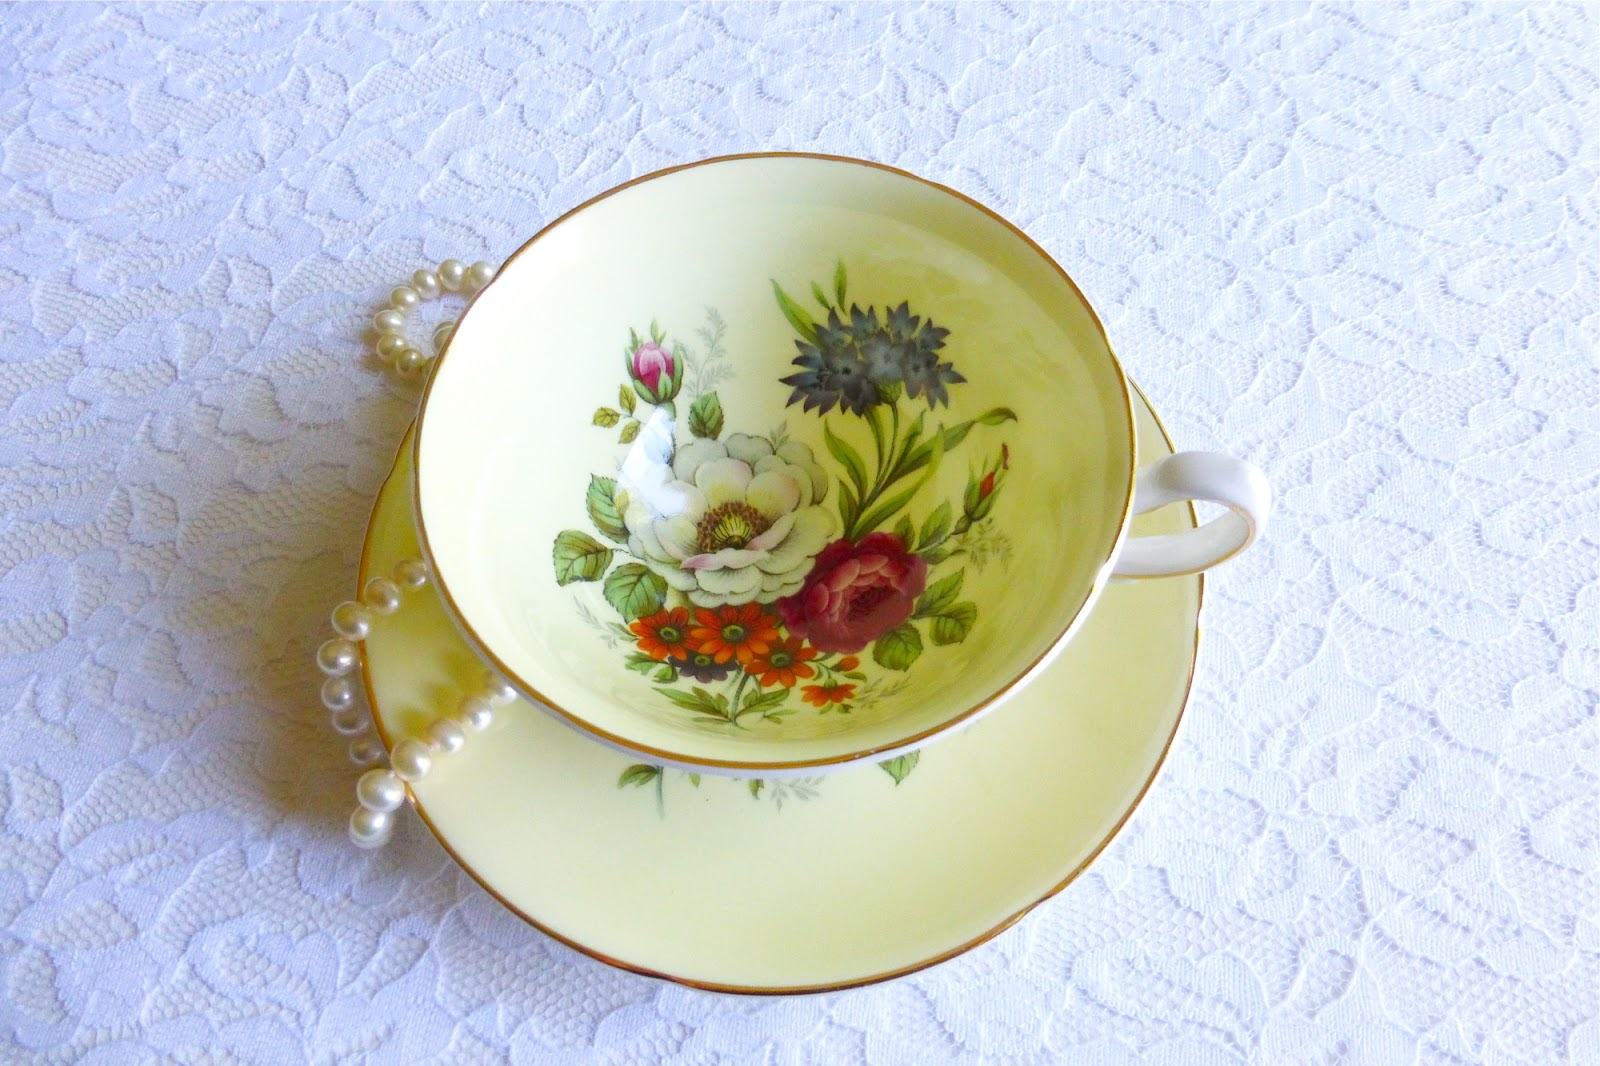 flatten the curve, flatten the coronavirus curve, flatten the COVID-19 curve, flatten the coronavirus COVID-19 pandemic curve, days of coronavirus quarantine, COVID-19 quarantine, Vintage Tea Treasures on Etsy, Vintage Tea Treasures by June Anderson of Under The Plum Blossom Tree blog, Royal Grafton #1454 pastel yellow wide teacup and saucer, A.B. Jones teacup and saucer, vintage pastel yellow teacup and saucer, vintage floral teacup and saucer, styling with vintage teacups, how to style vintage teacups, Royal Grafton wide teacup, #standwithsmall #etsy